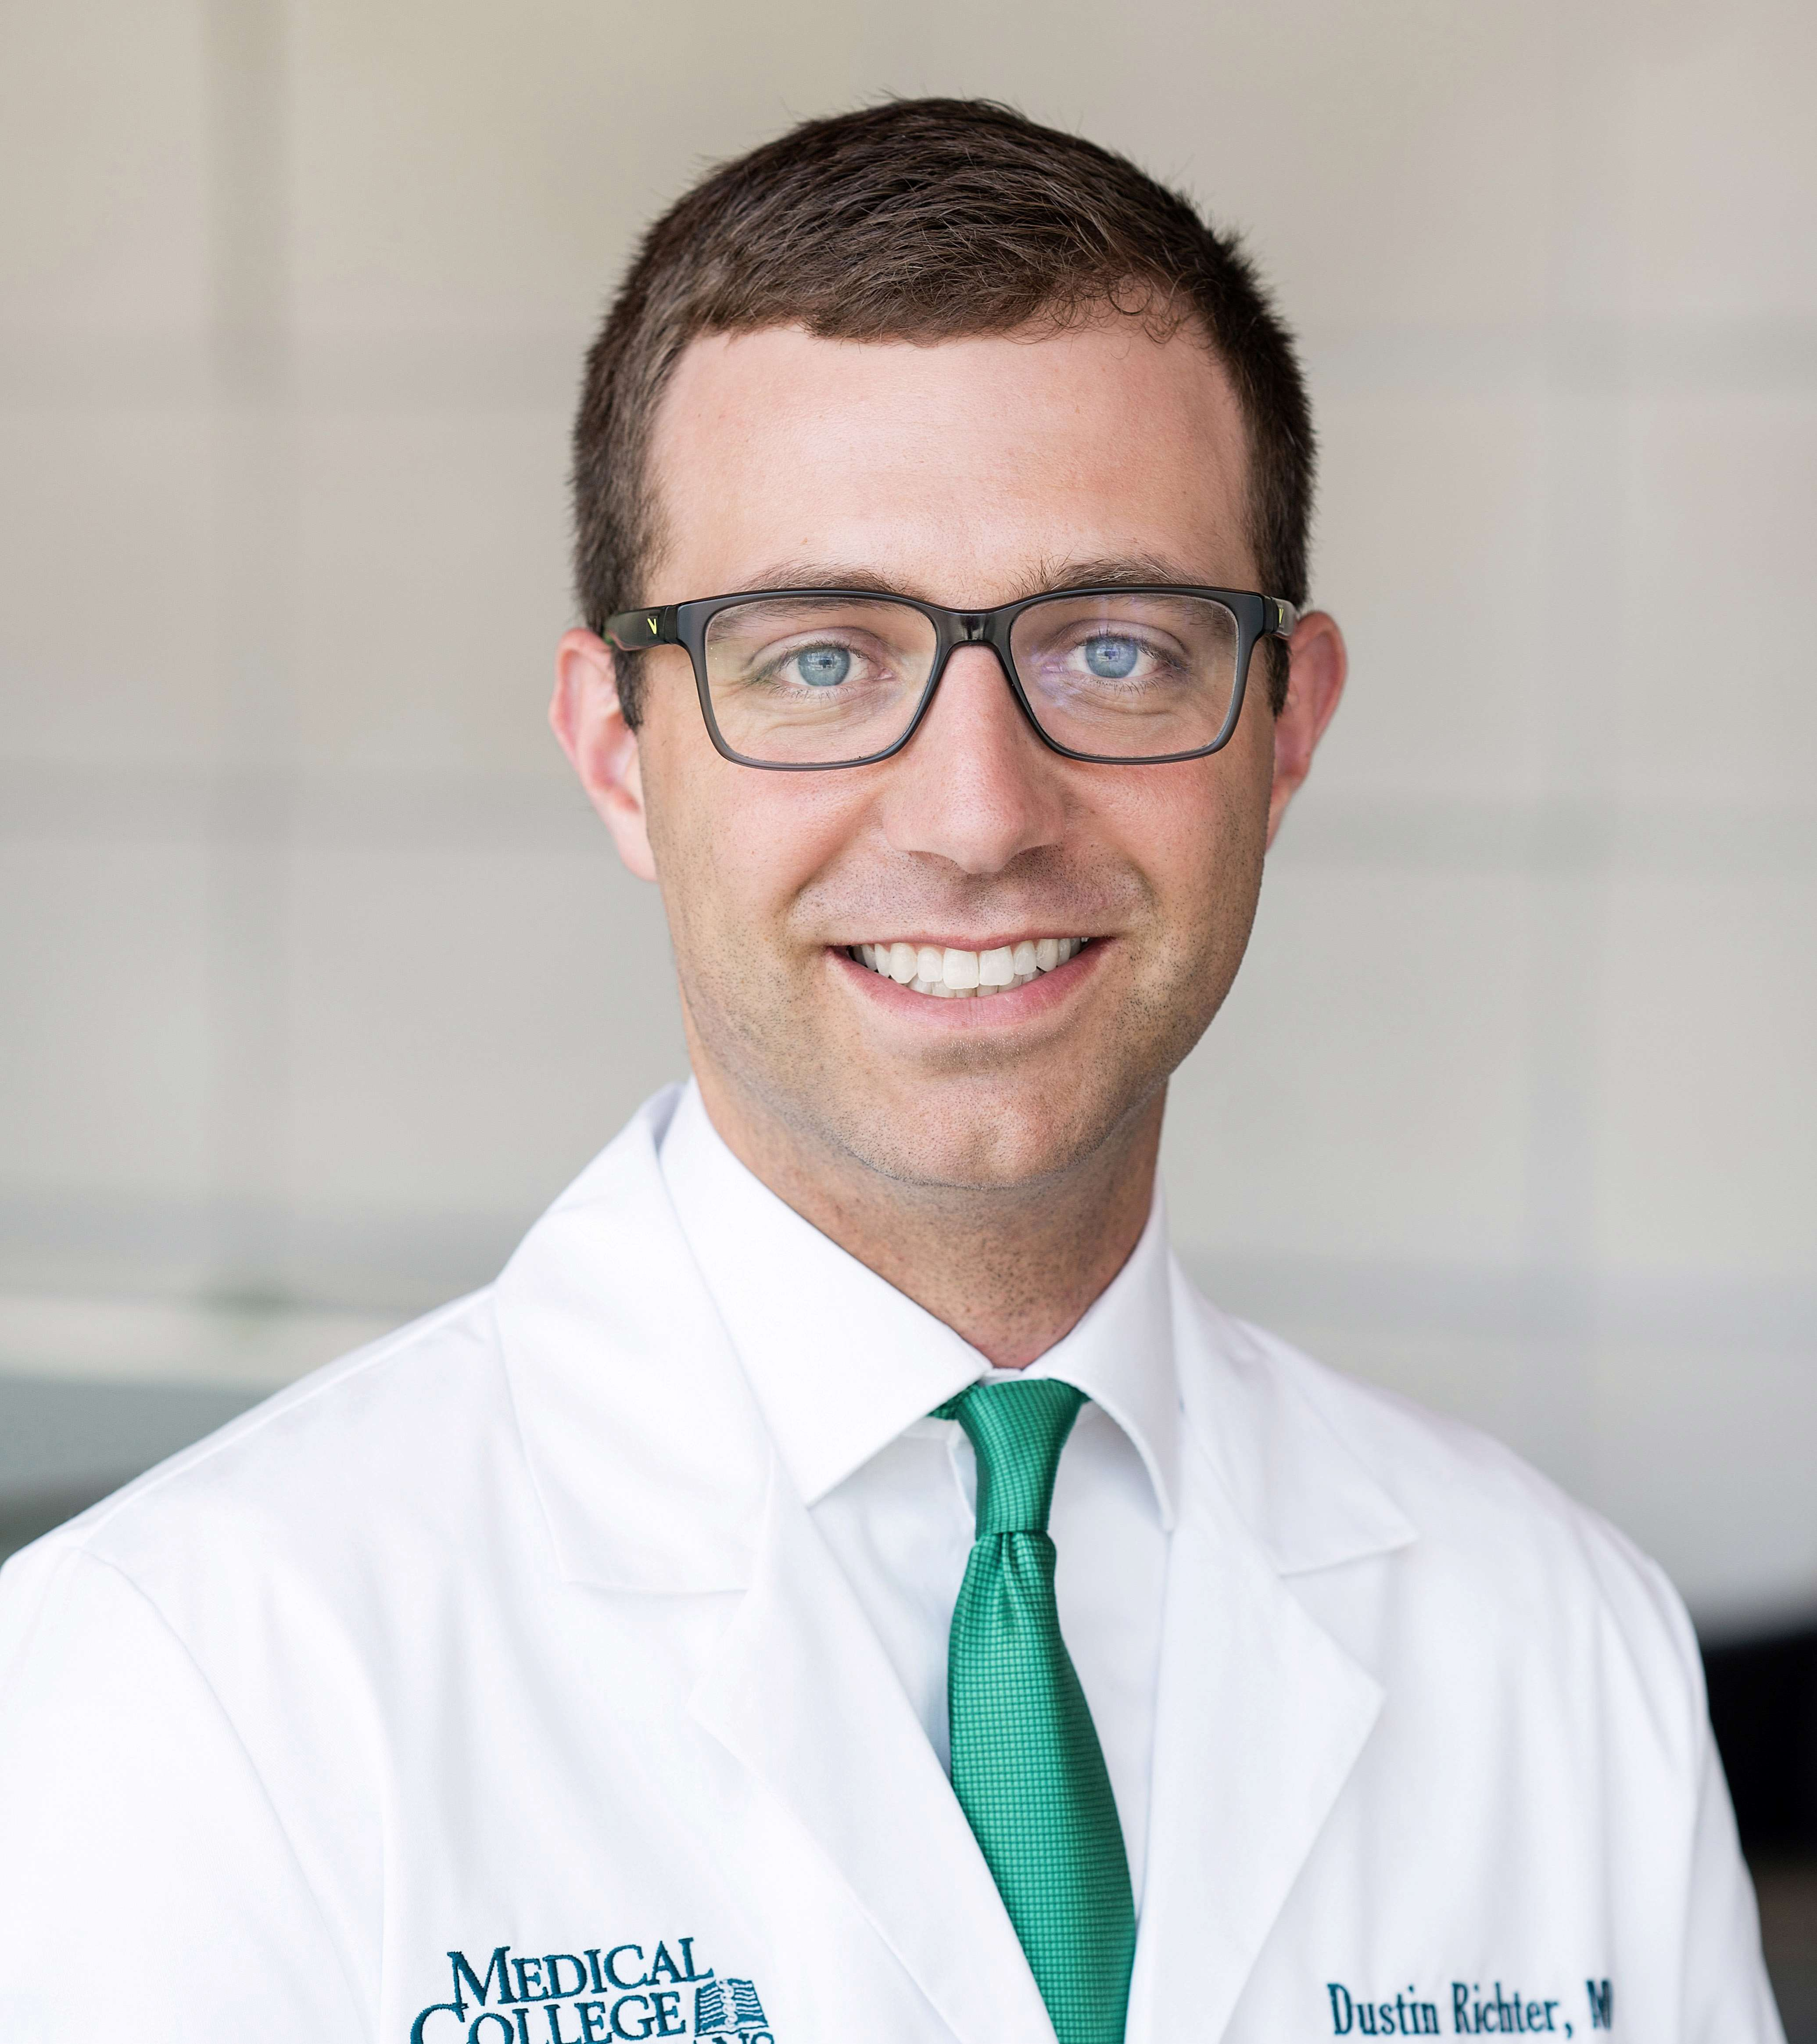 Dustin Richter, MD